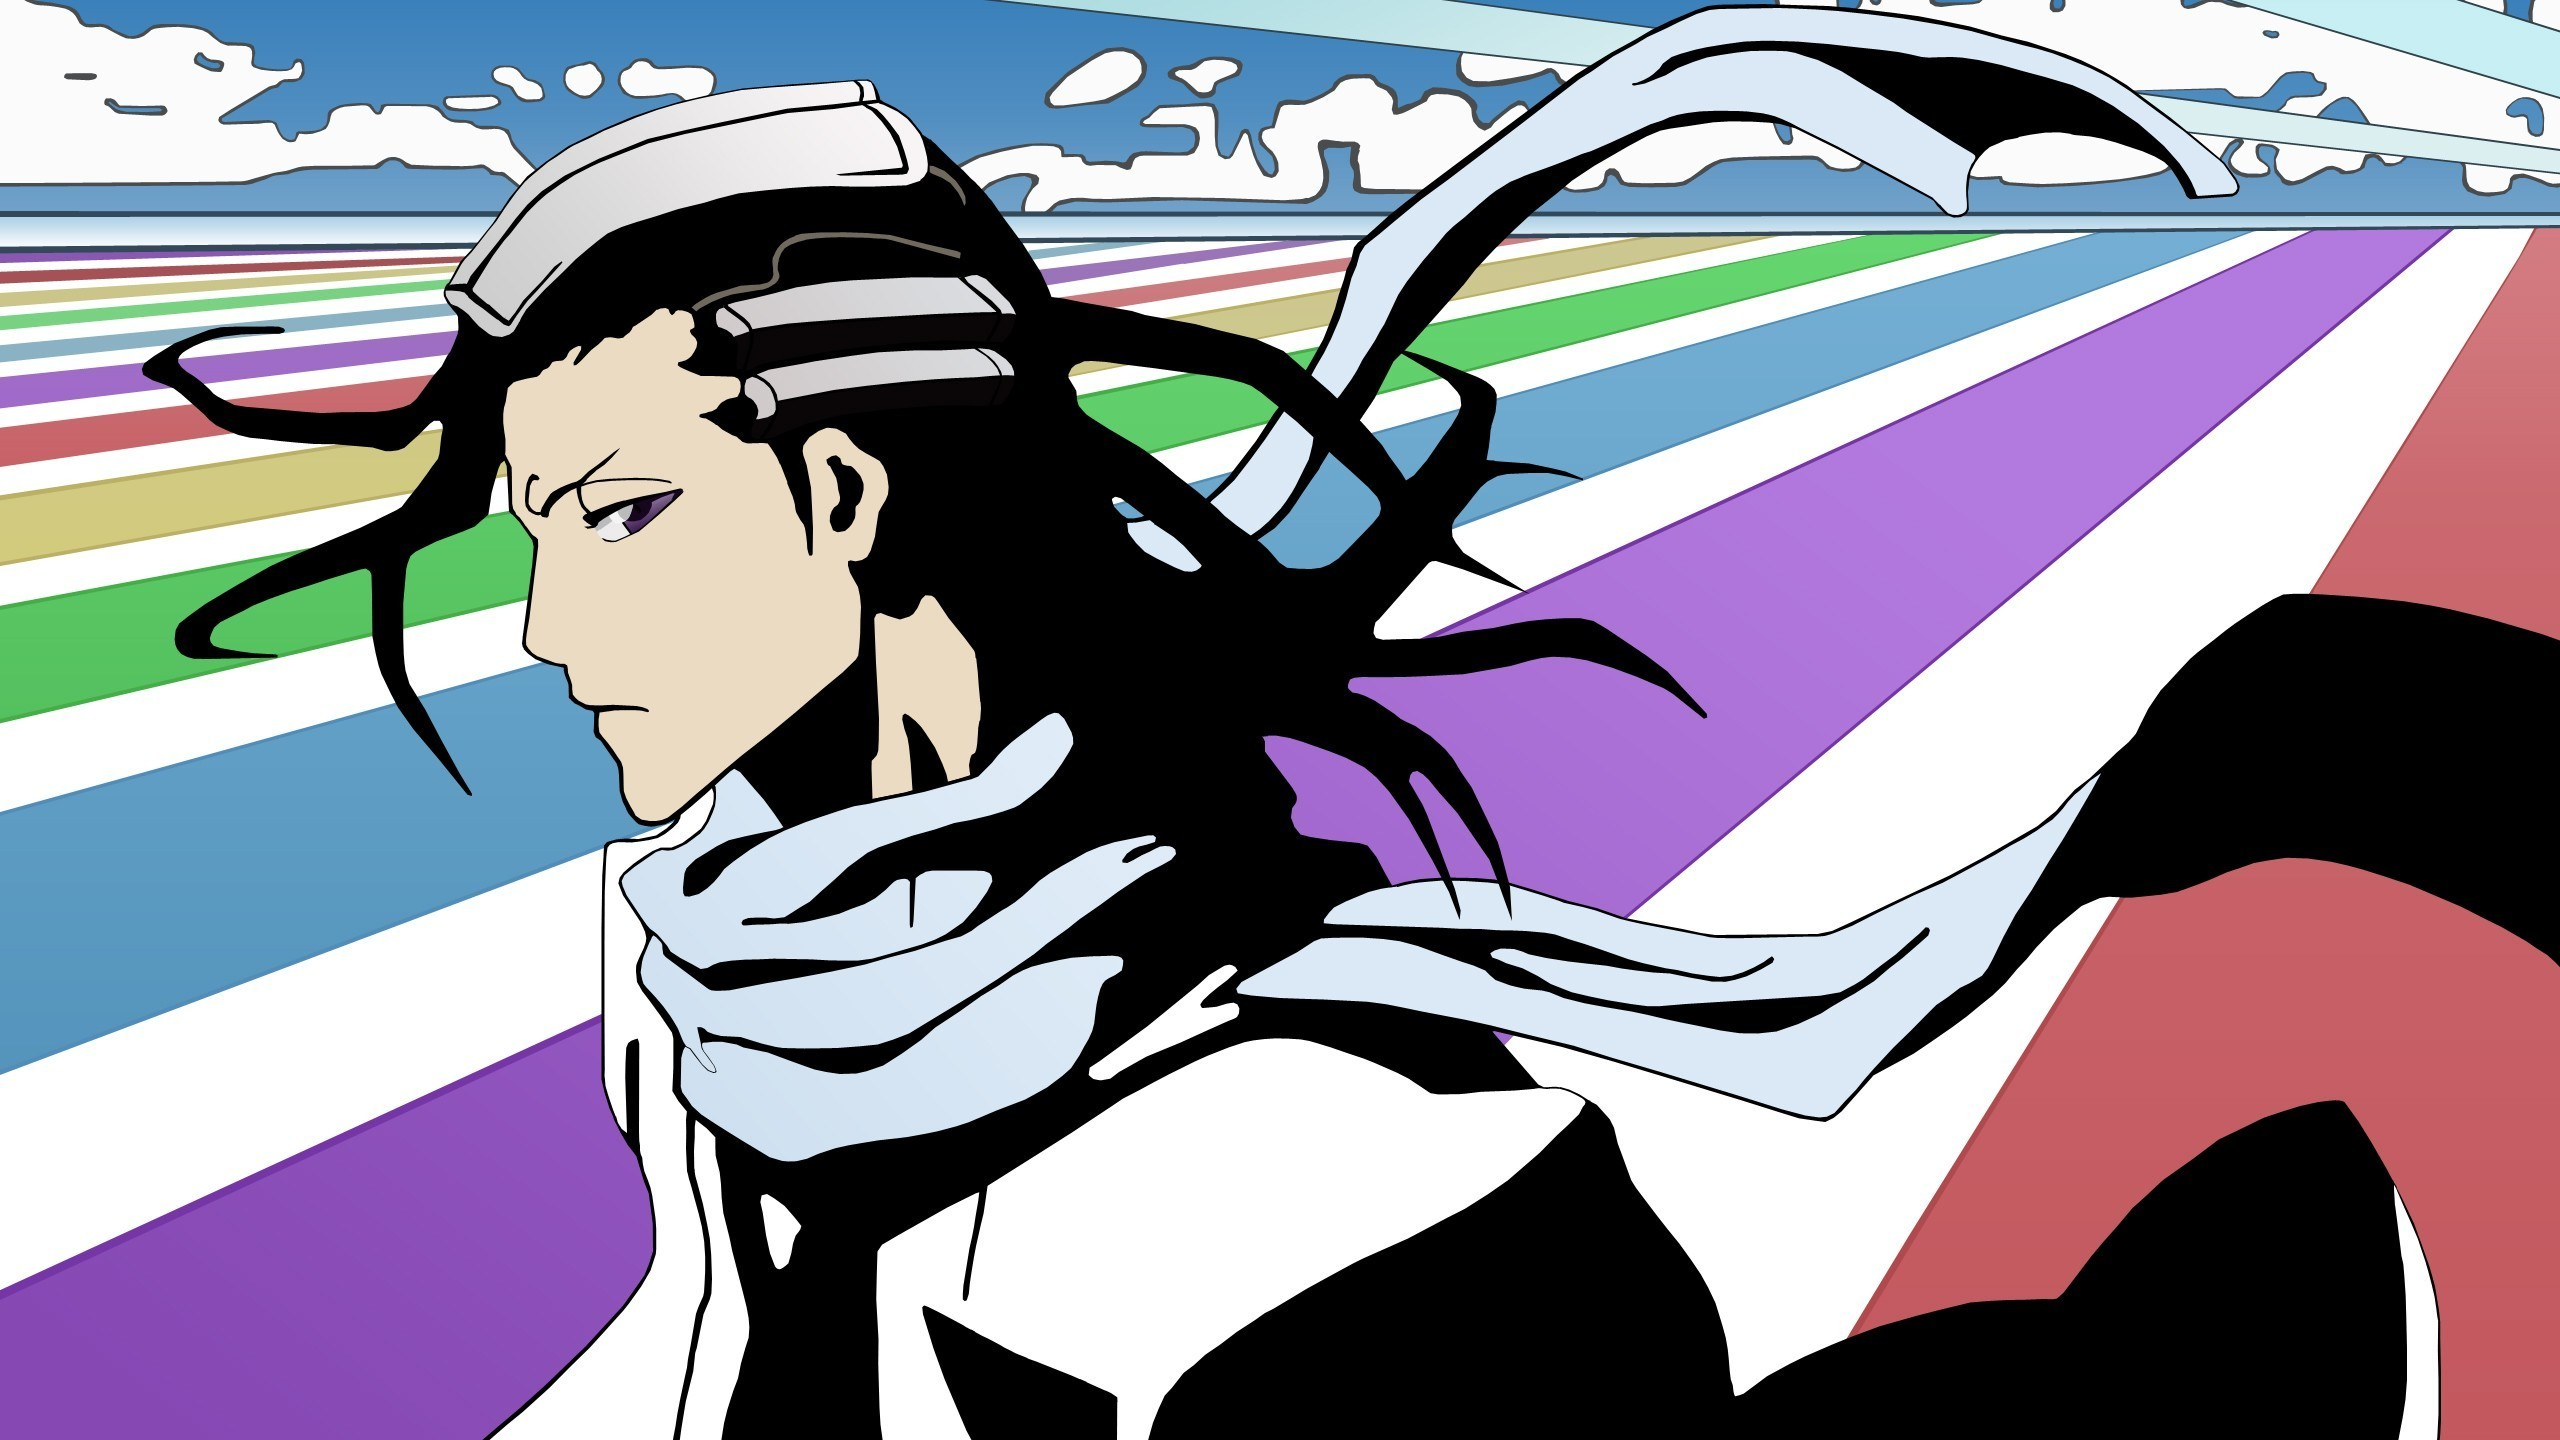 2560x1440 Bleach, Kuchiki Byakuya, Anime Vectors Wallpapers HD / Desktop and Mobile  Backgrounds